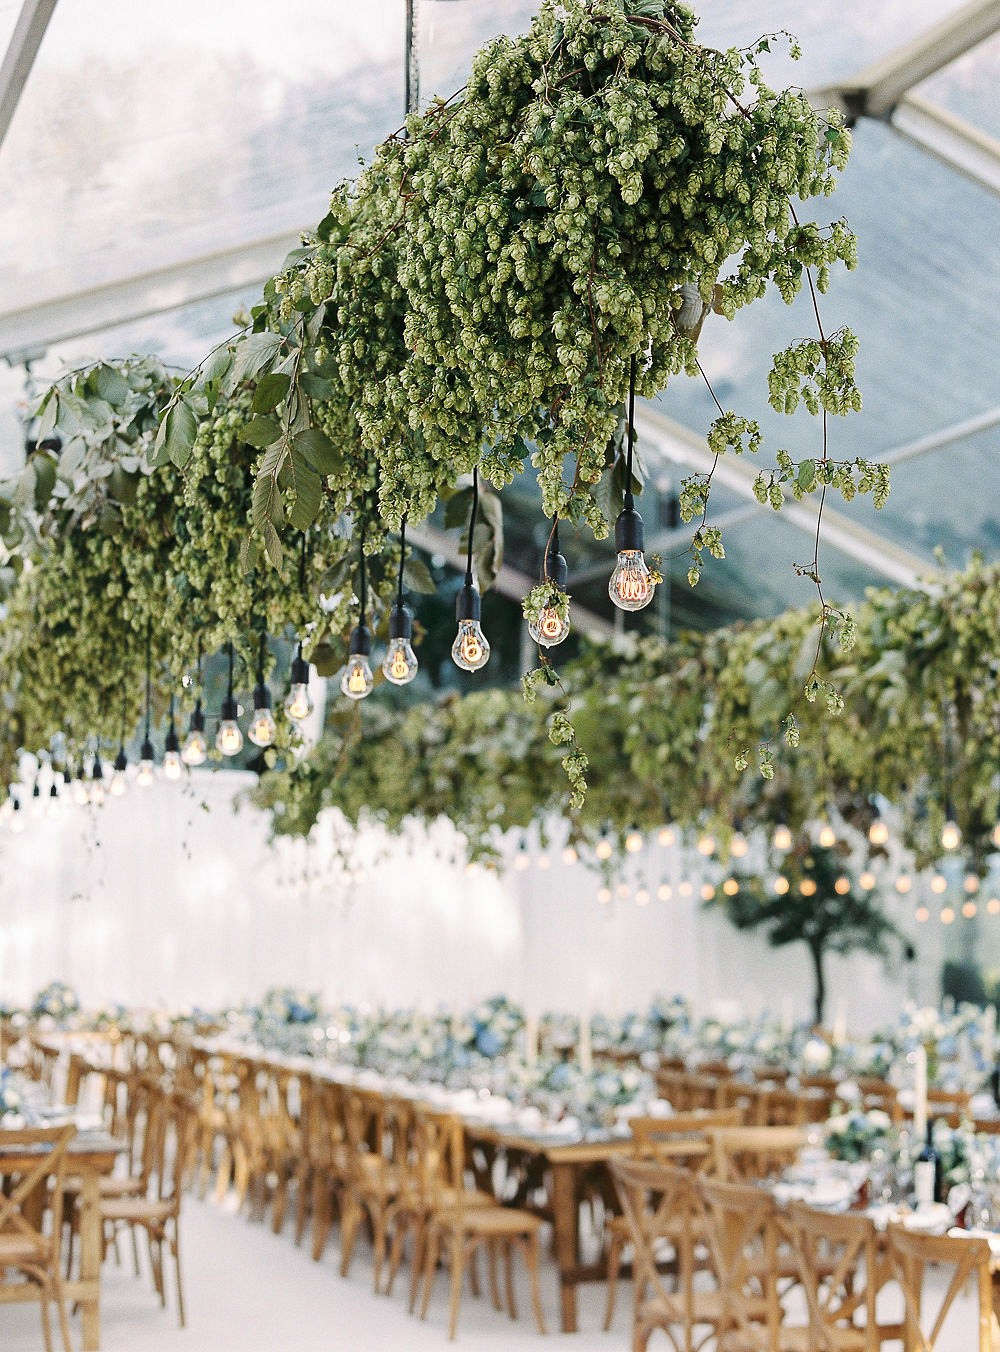 WEDDINGS IN A TENT MARQUEE